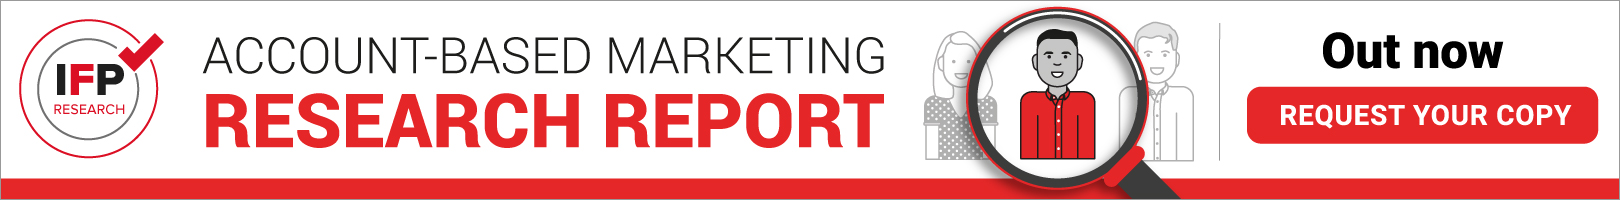 Account-Based Marketing Research Report